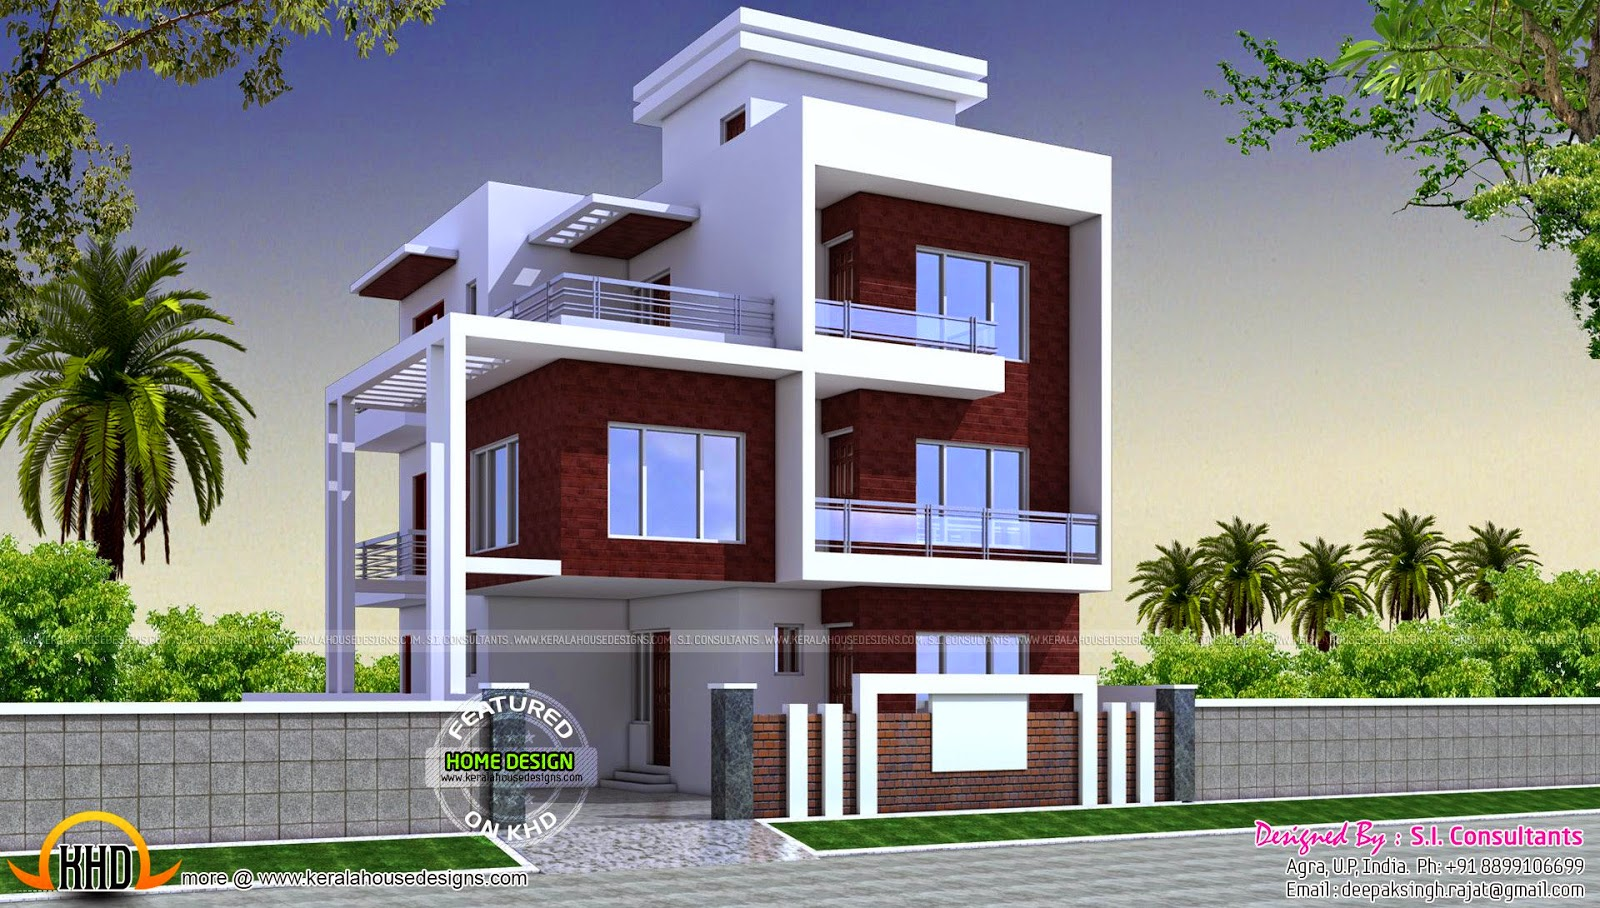 Three Floor Contemporary House Kerala Home Design And Floor Plans - 1200 square feet tiny house designs